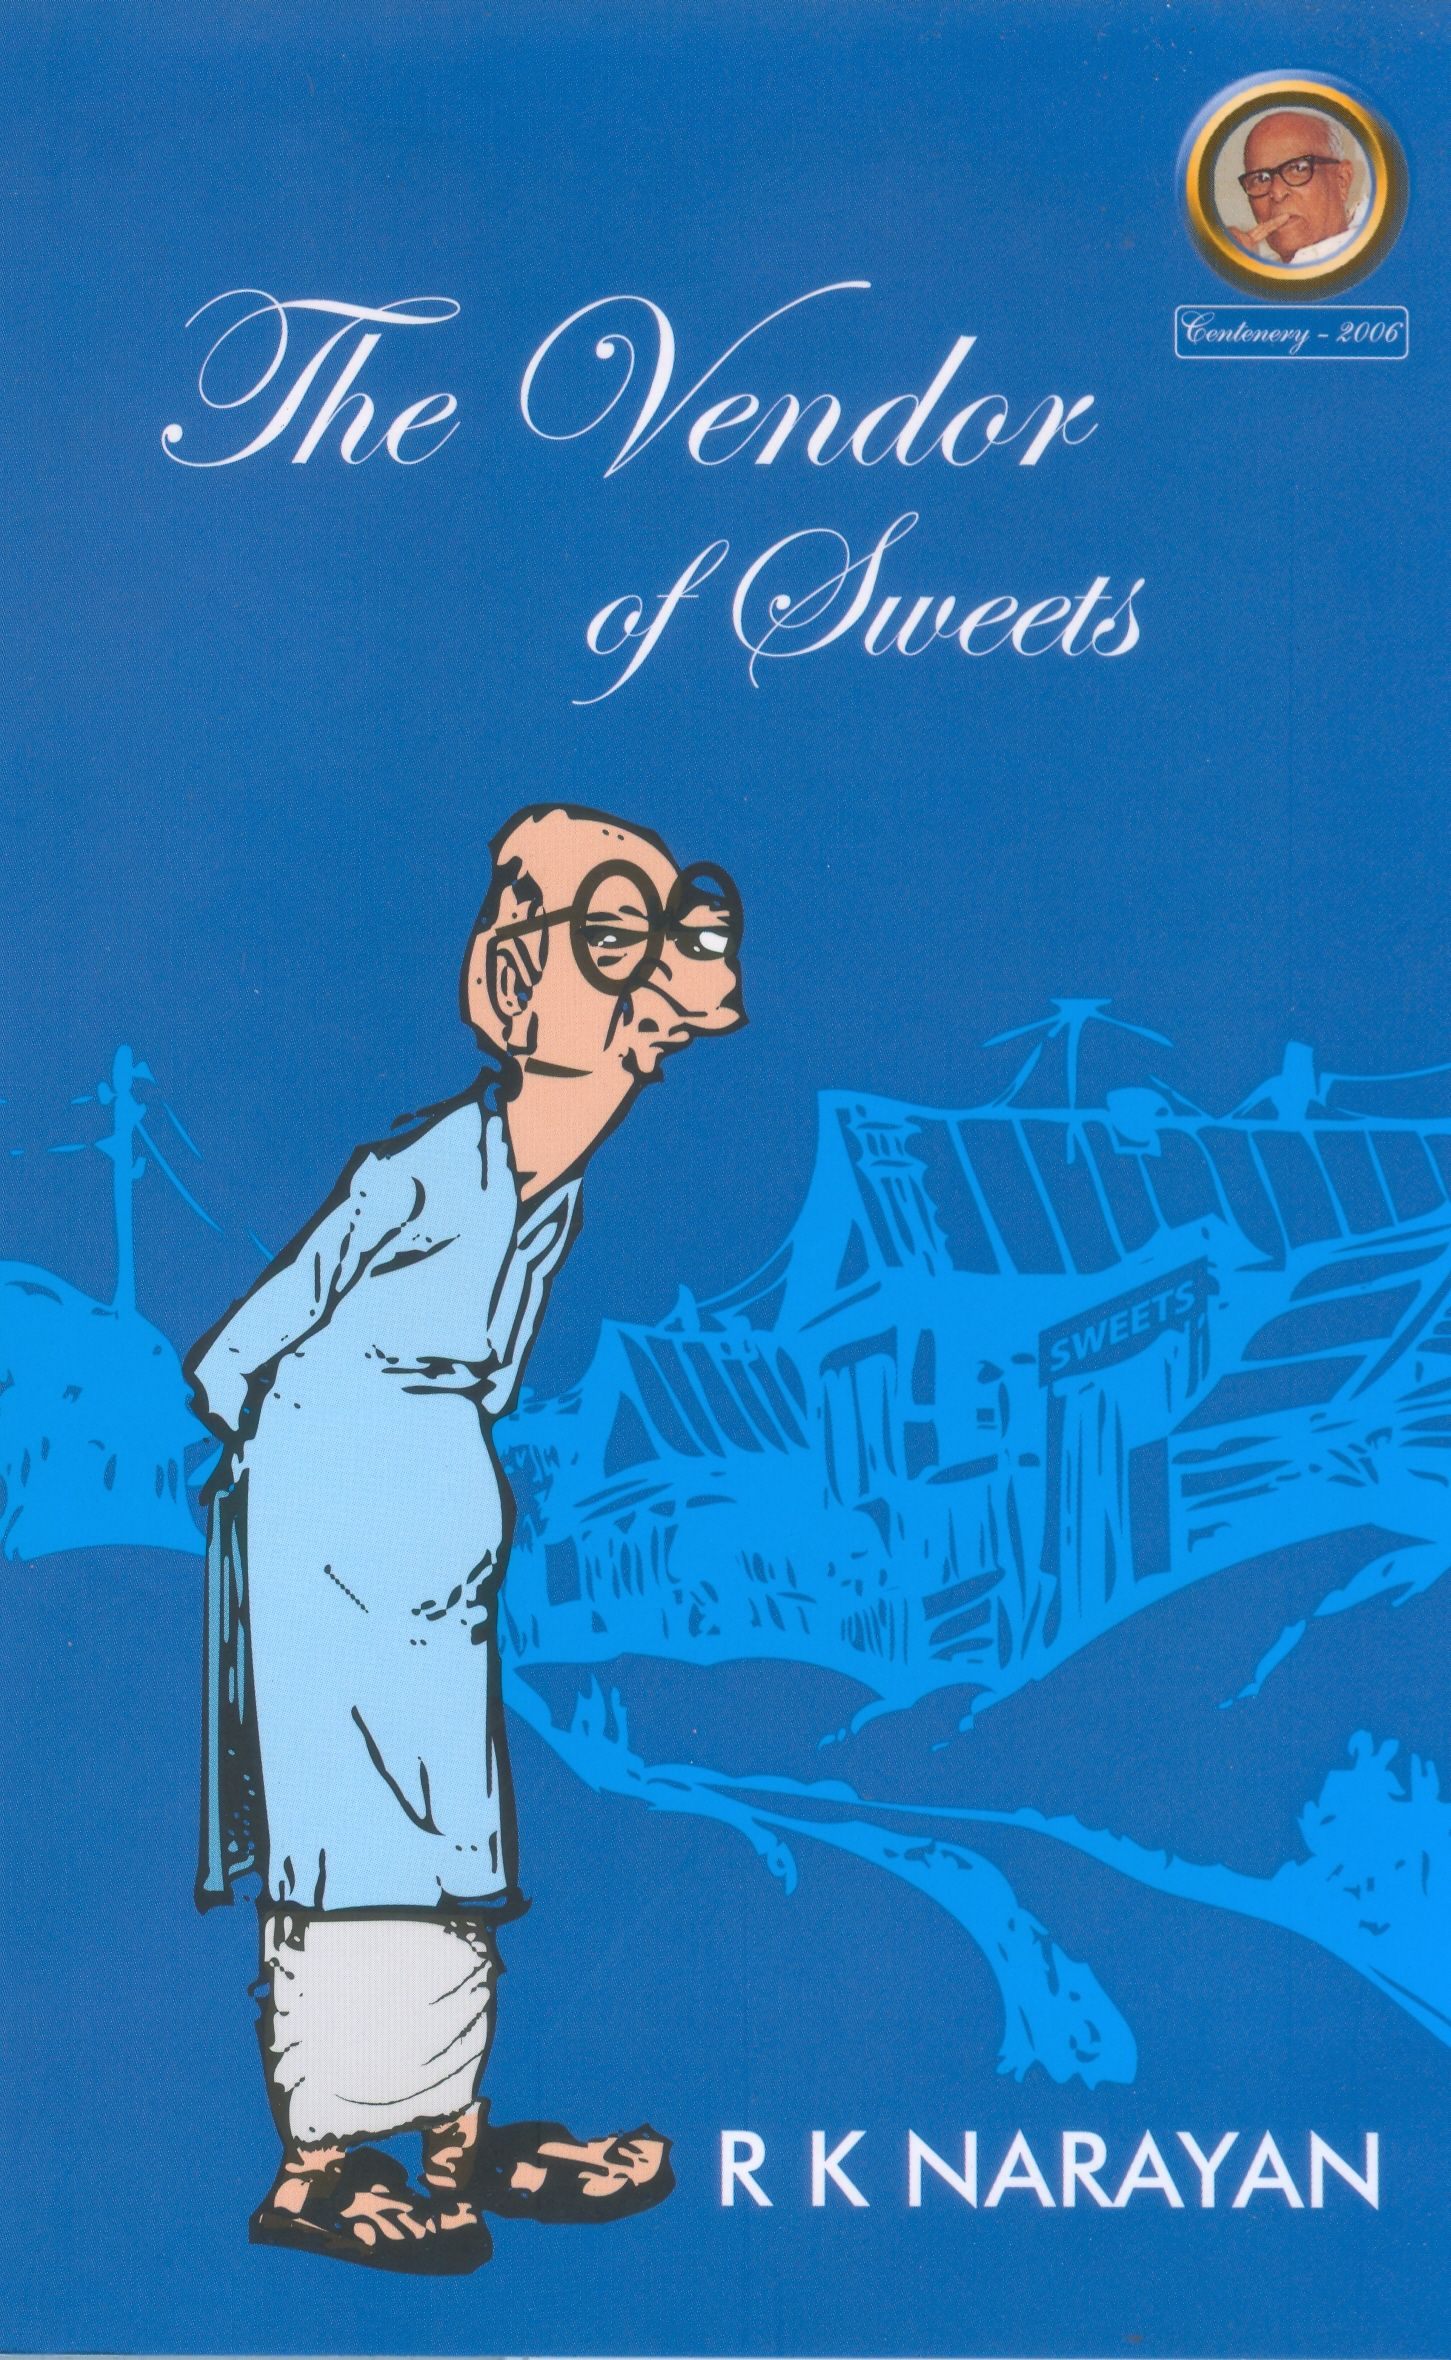 The vendor of sweets by rk narayan books worth reading fiction the vendor of sweets by rk narayan fandeluxe Choice Image